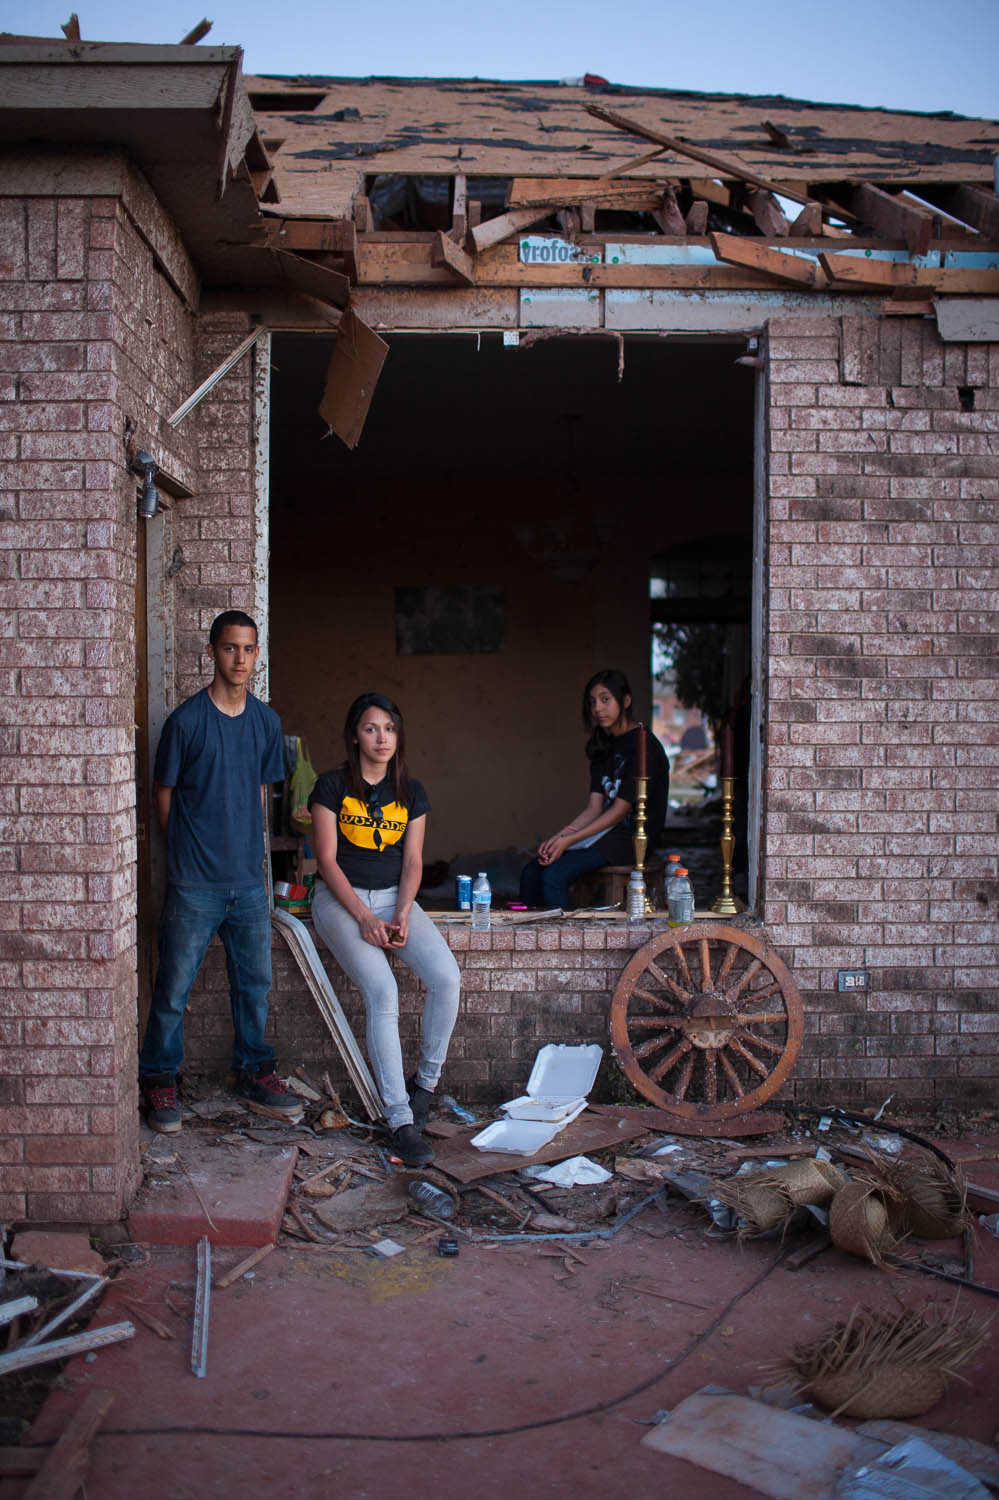 Siblings (from left) Alan, Sylvia and Ariel Trillo pose at their home in the Heather Wood subdivision in Moore. The Trillo home is one of the few homes there that is still standing, though everything inside is damaged.